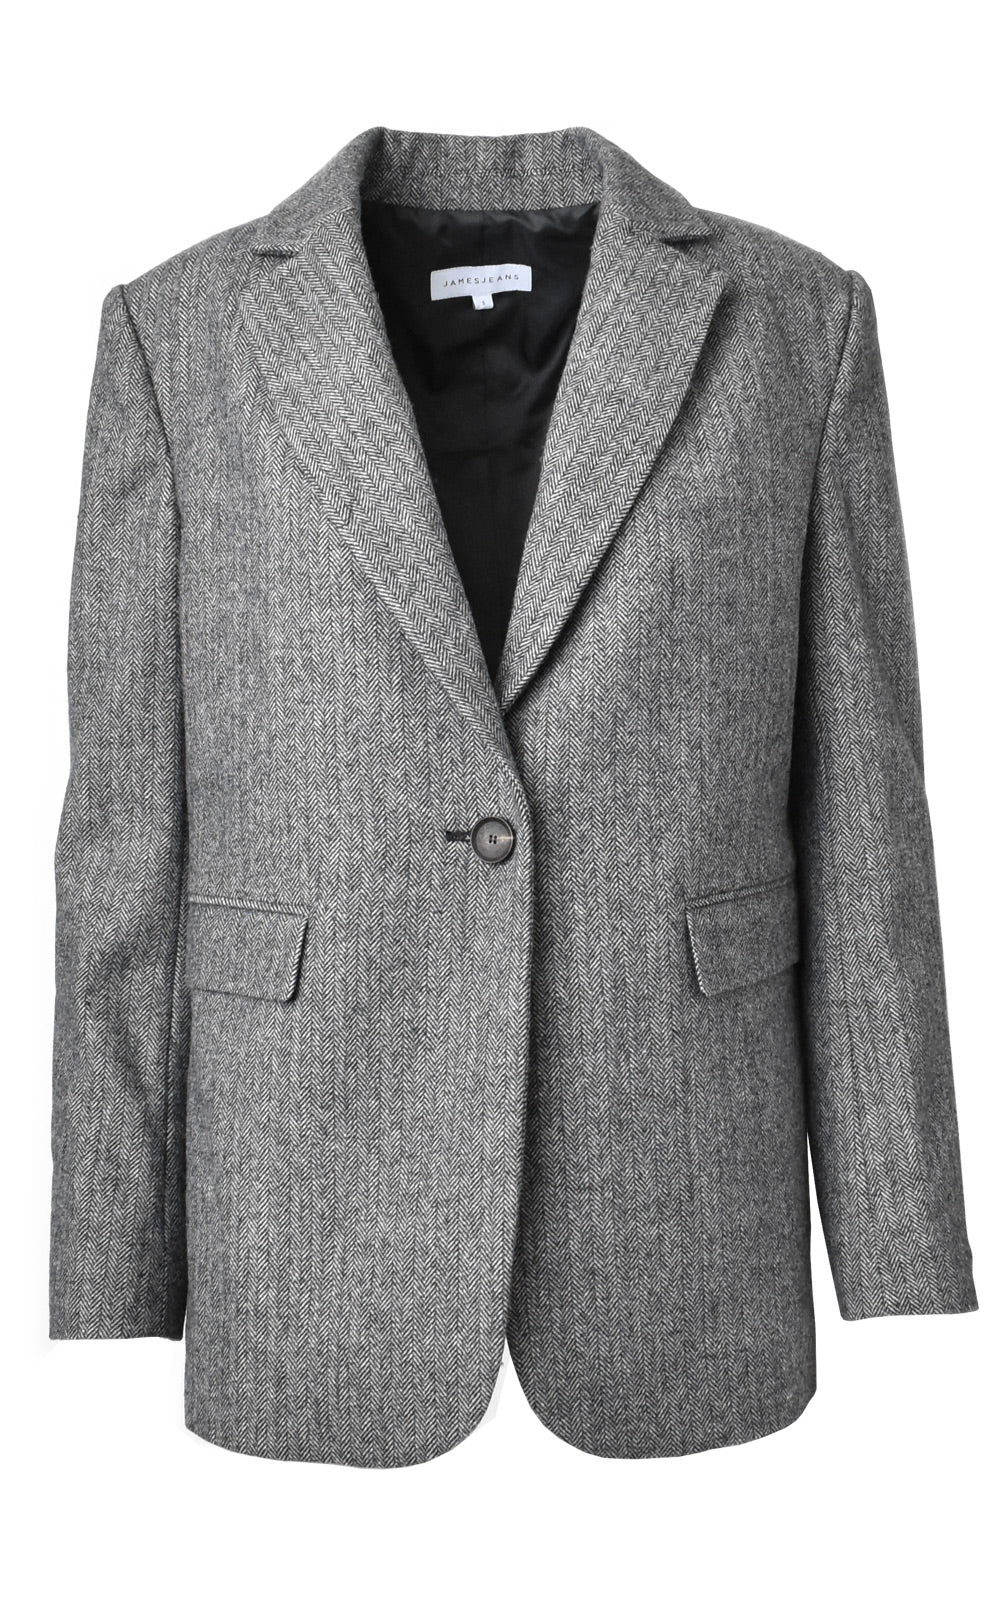 James Jeans Kennedy Herringbone Boyfriend Blazer Grey Herringbone